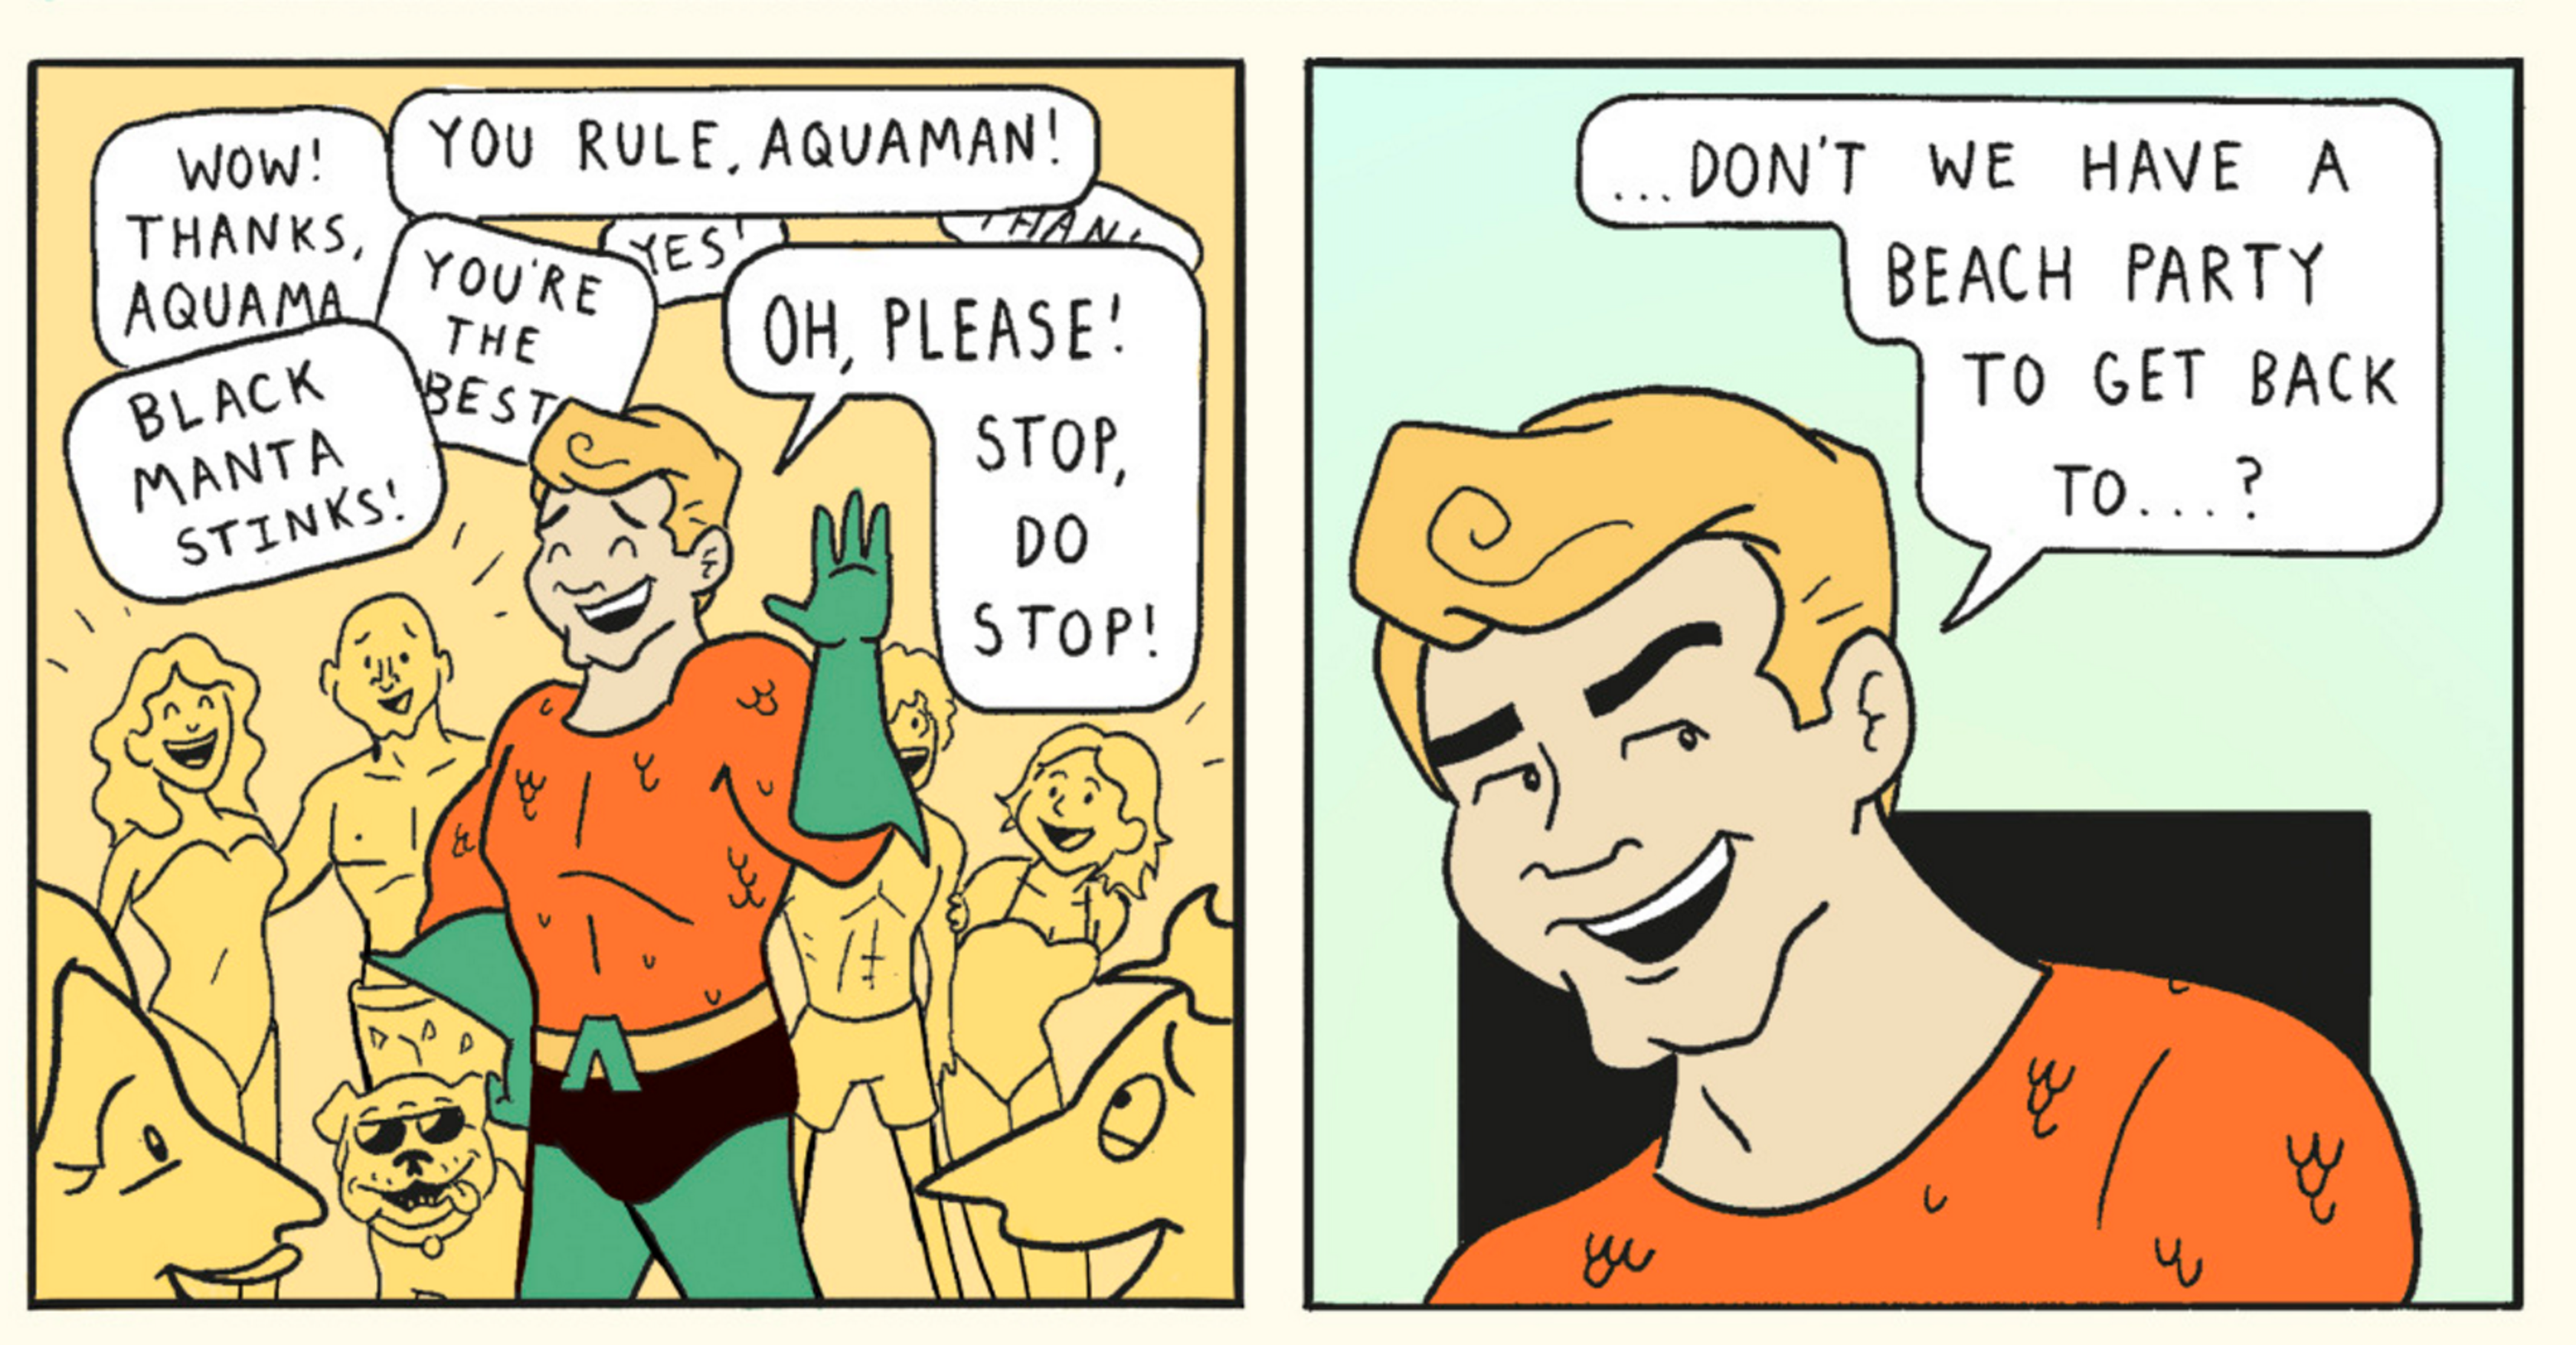 Excerpt from Aquaman's Beach Party.